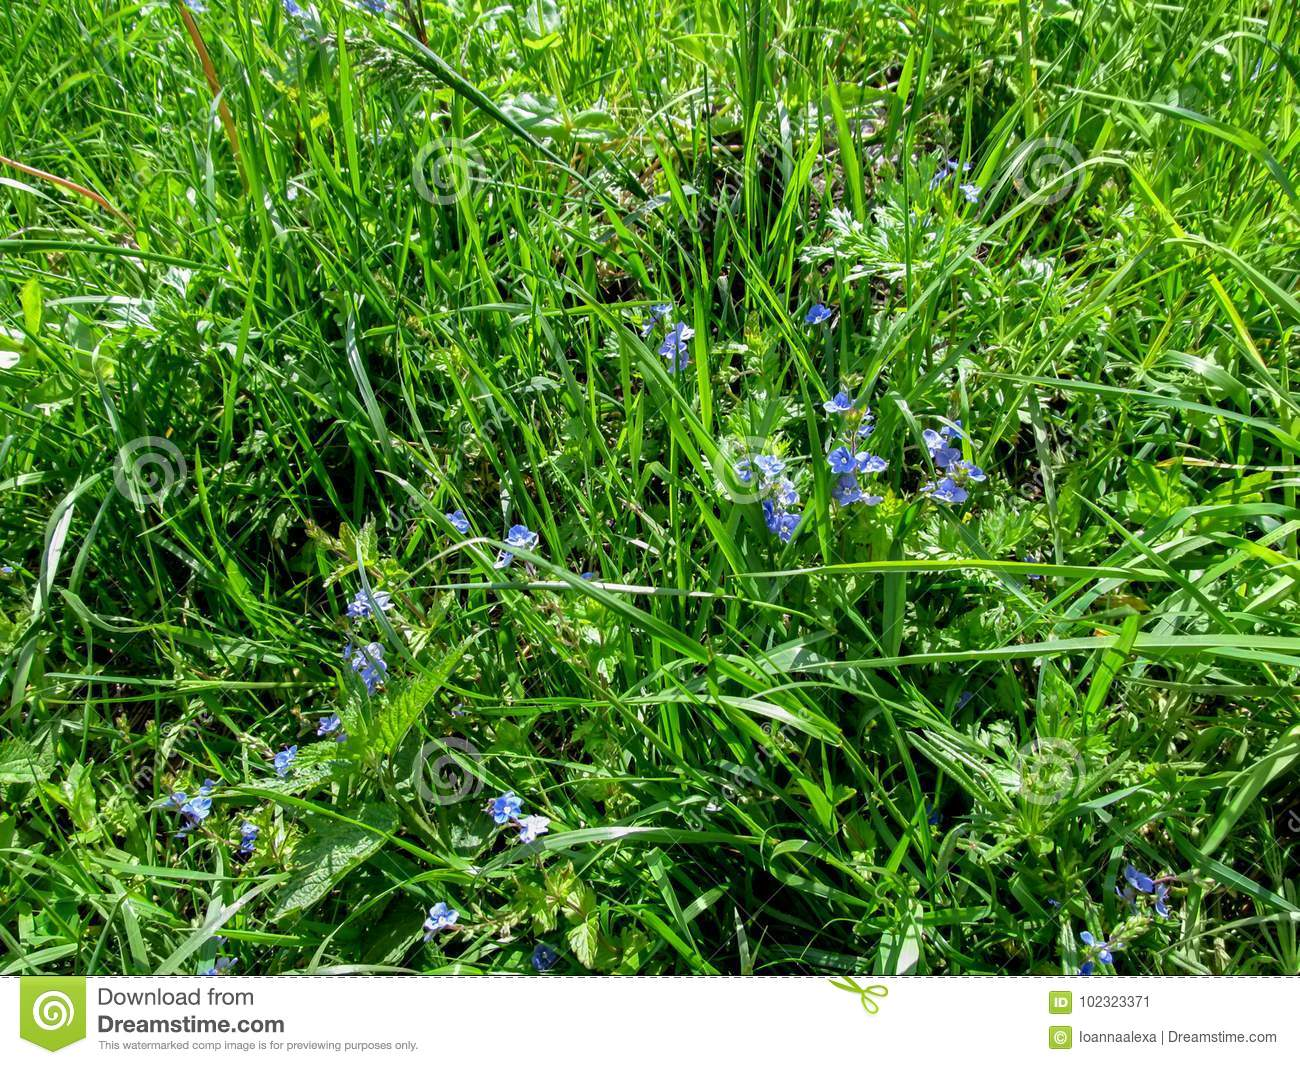 Young Juicy Meadow Grass With Small Blue Flowers In Spring Or Early